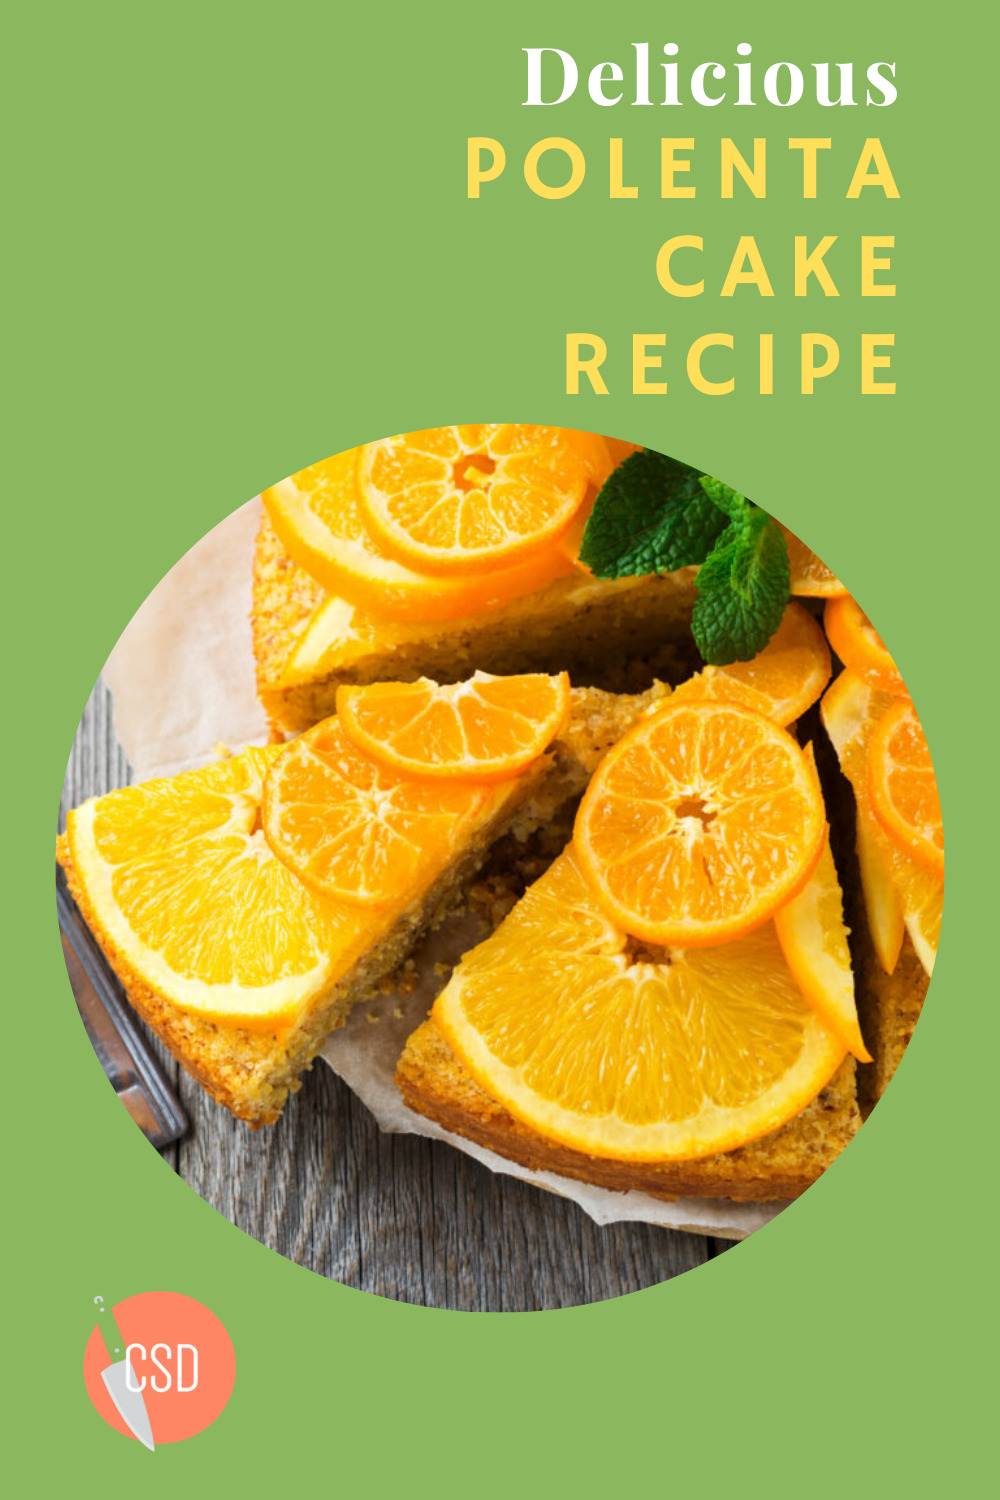 Cutsidedown.com will help you wow your dinner guests with amazing and easy recipes. Find whatever your palette desires with tons of ideas to choose from. Branch out of your comfort zone with these easy and delicious polenta cakes!